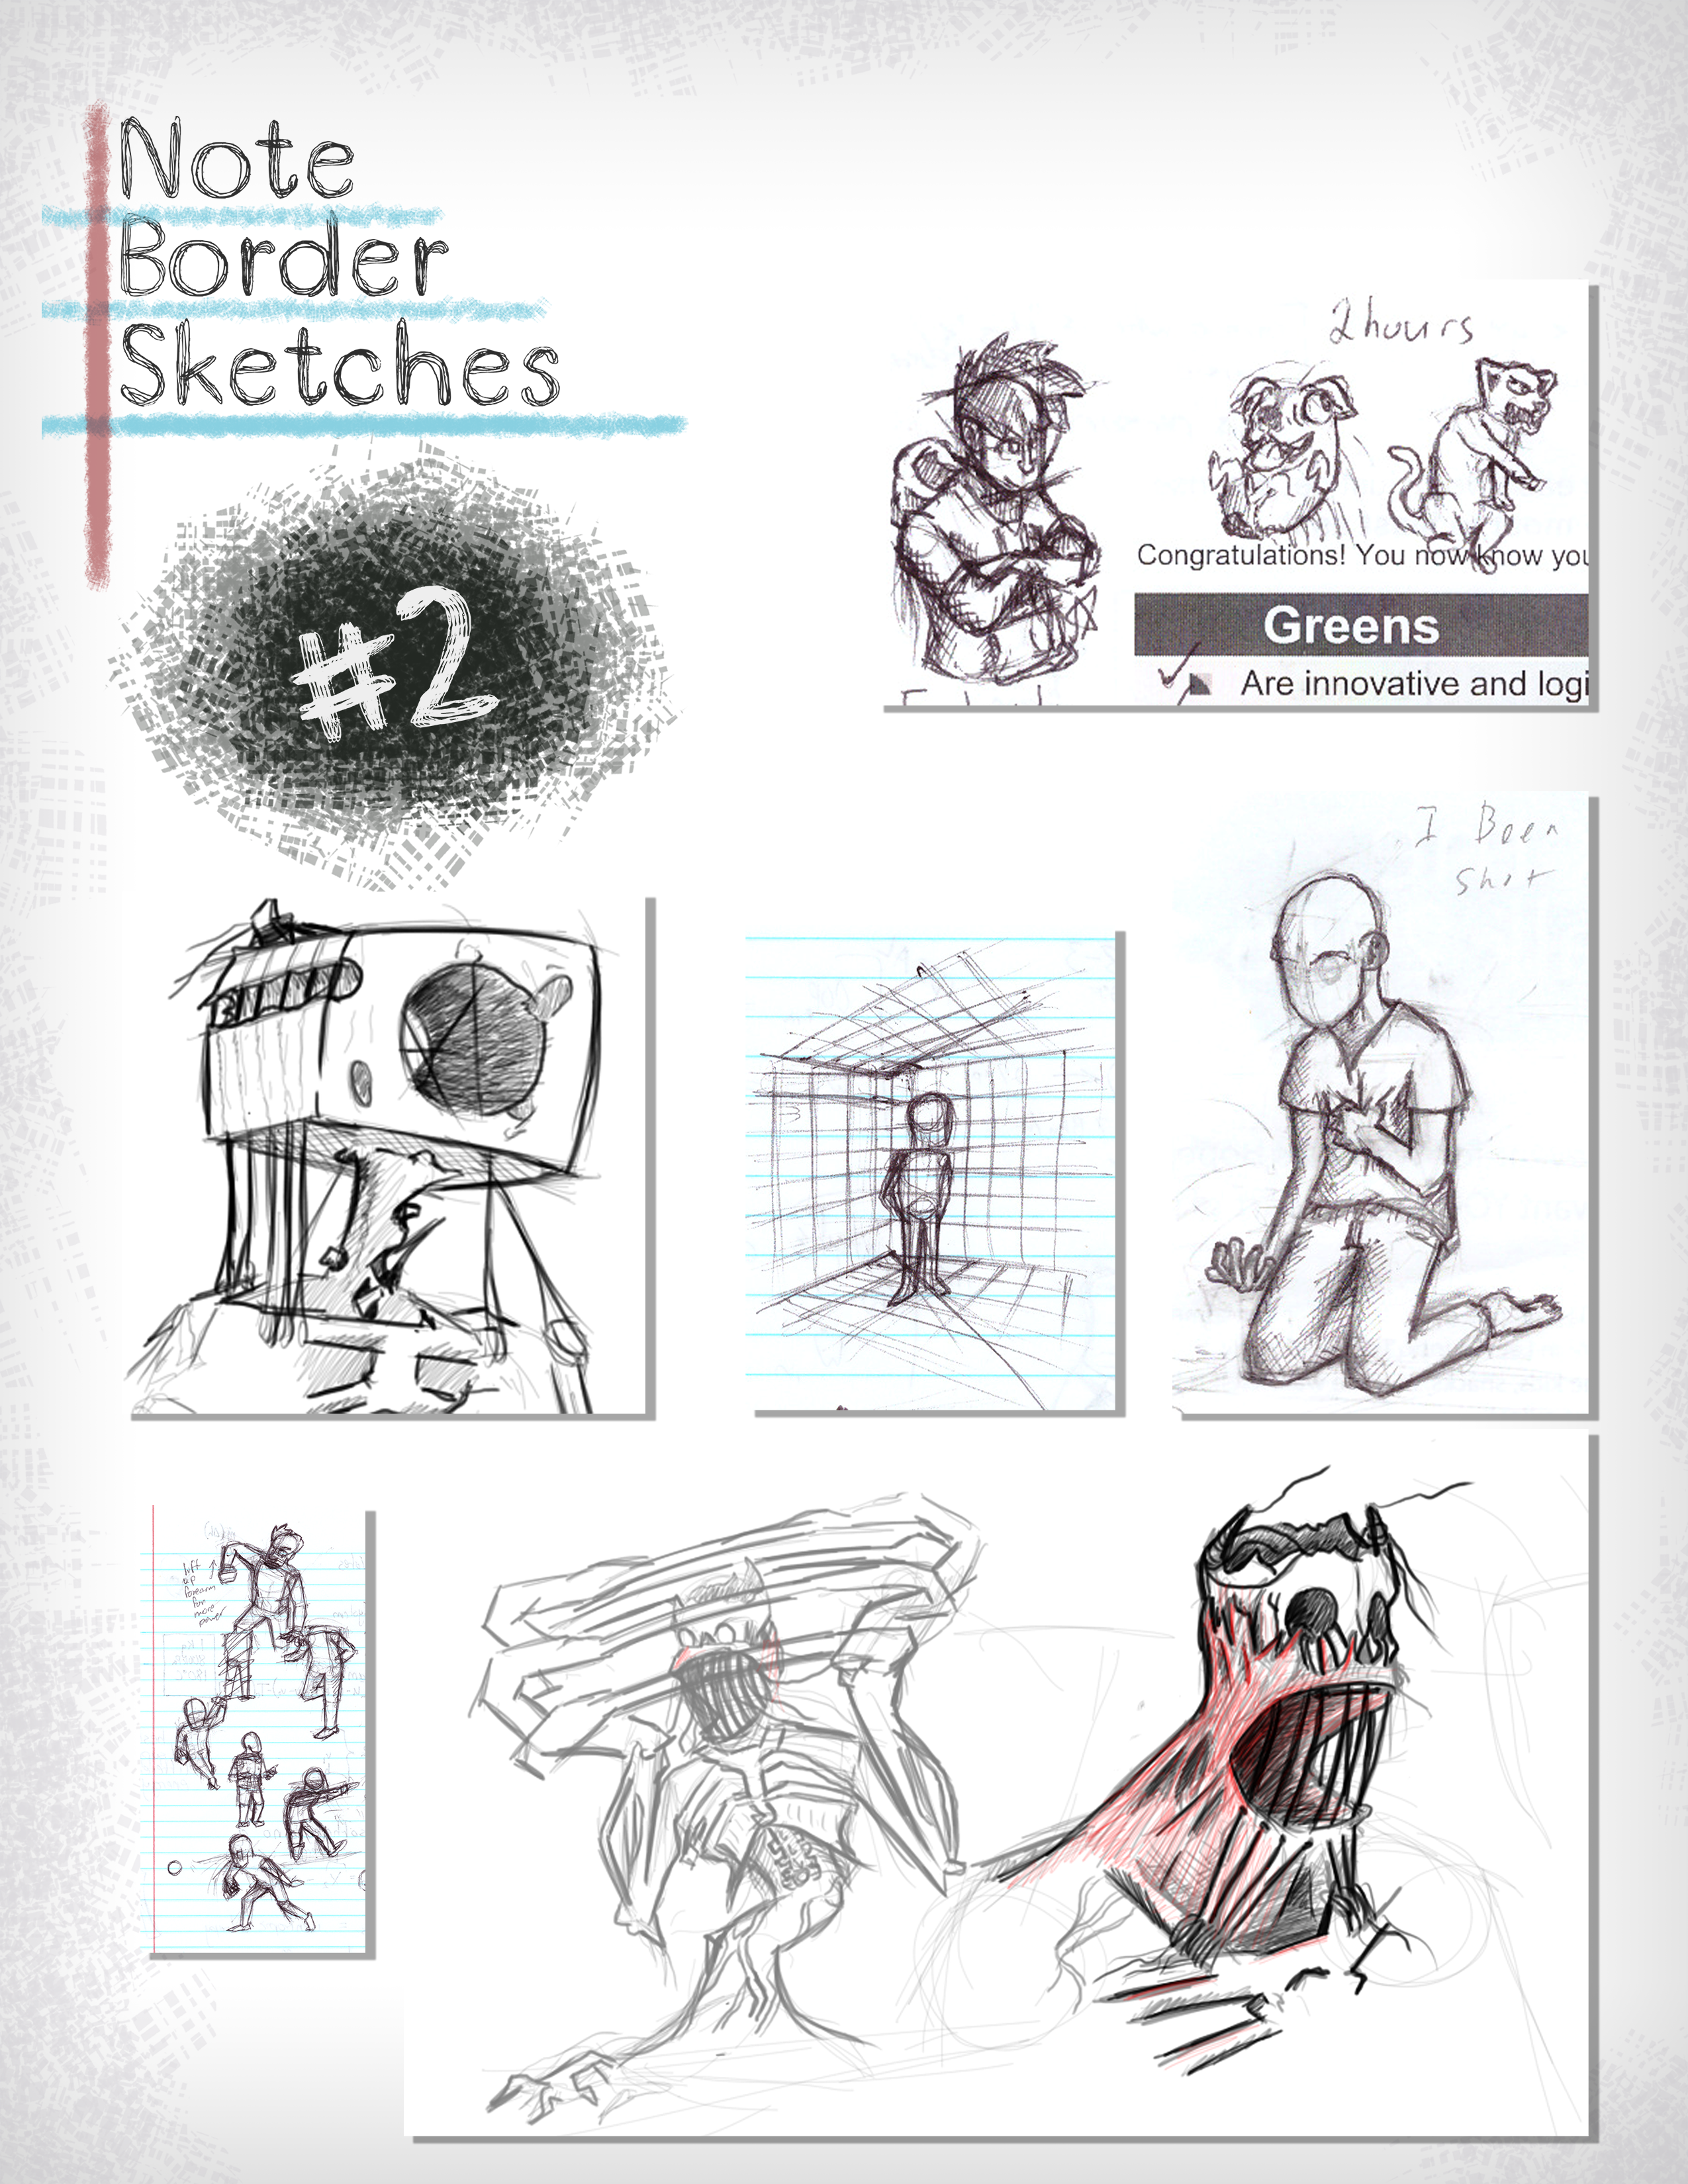 Note Border Sketches #002